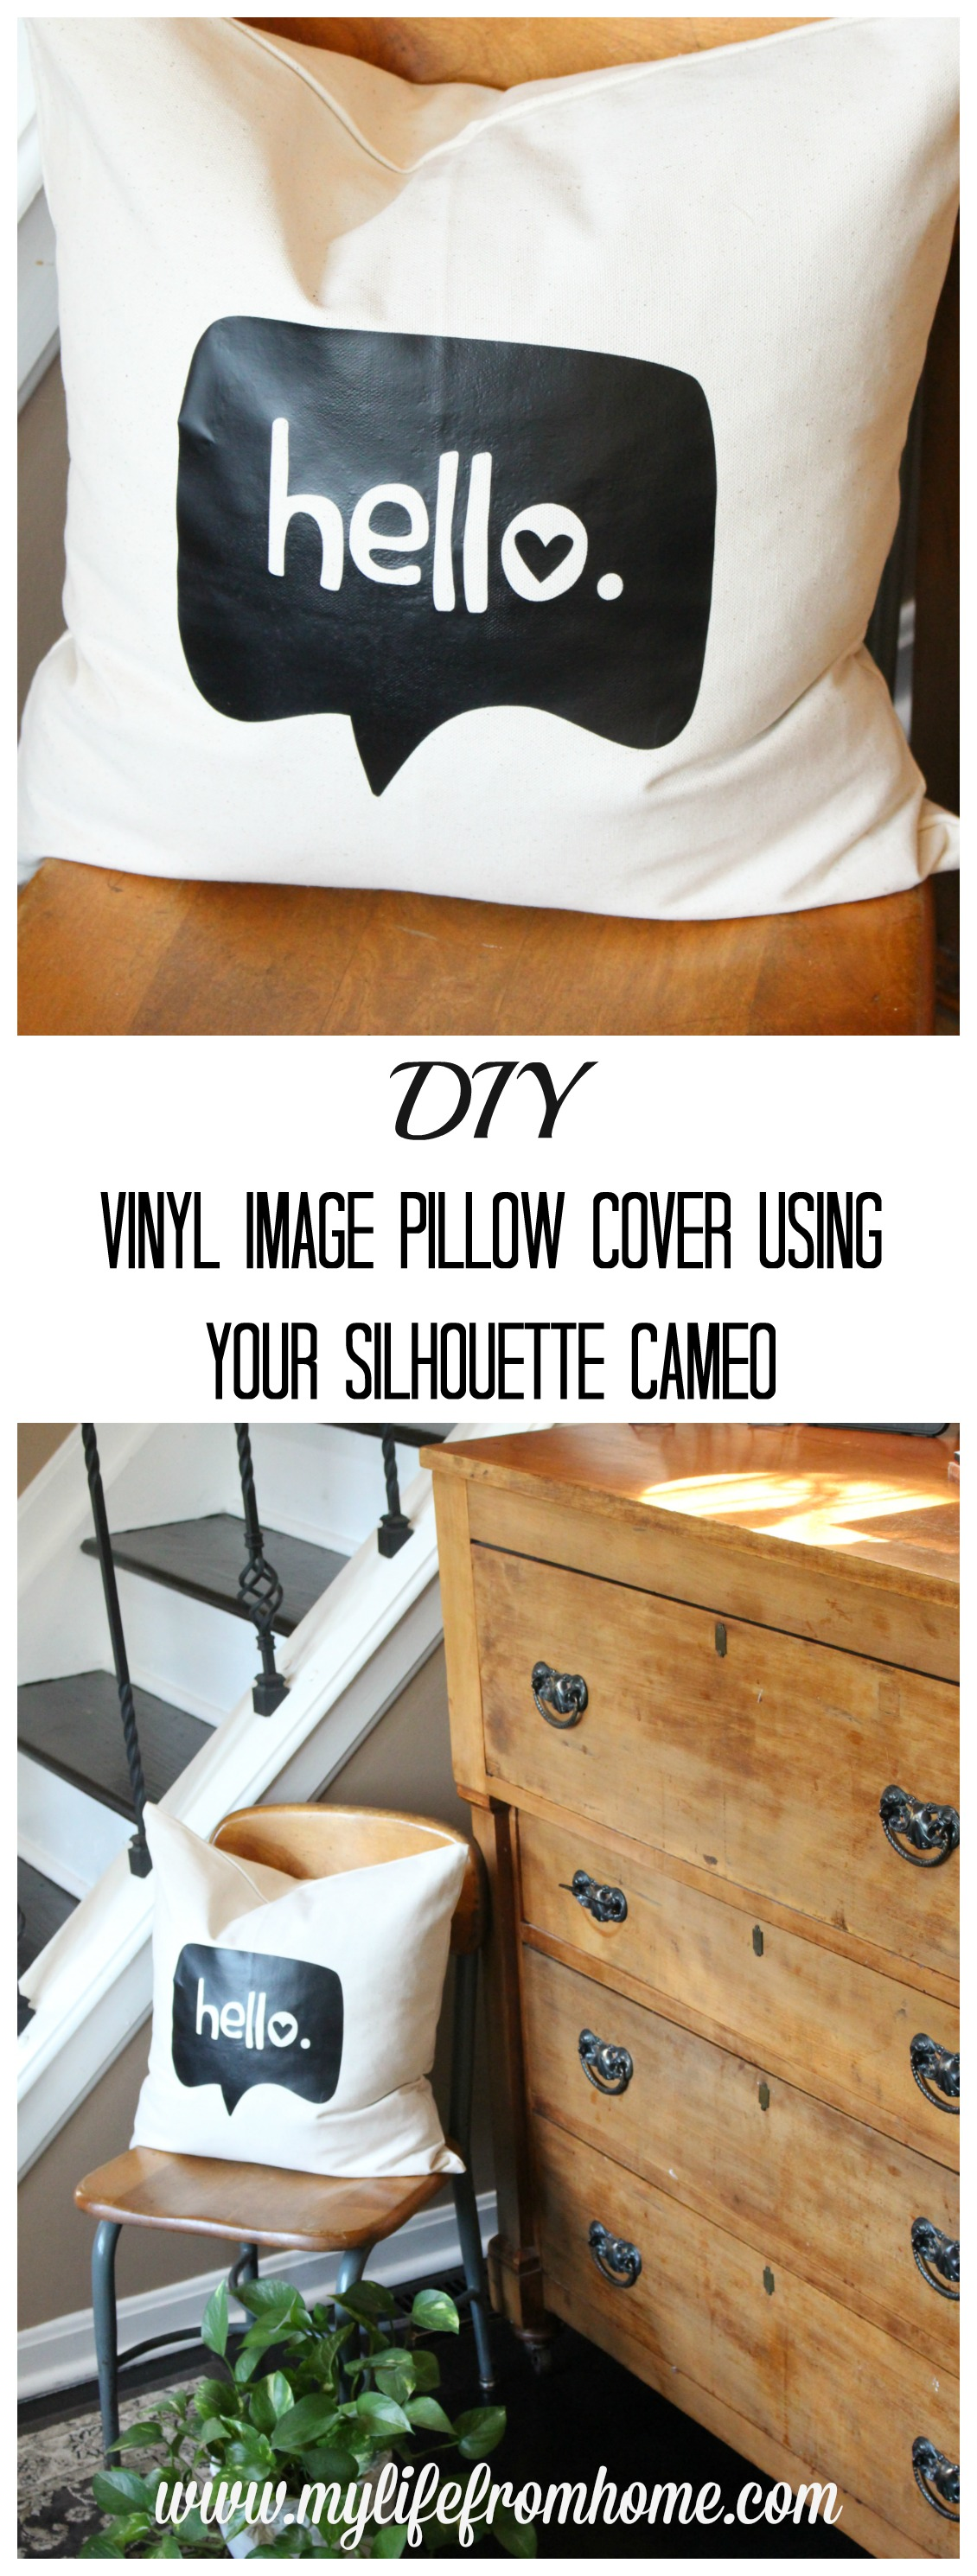 DIY Vinyl Image Pillow Cover Using Your Silhouette Cameo Silhouette Cameo Projects Pillow Cover Projects decor using vinyl Pillow Cover Projects